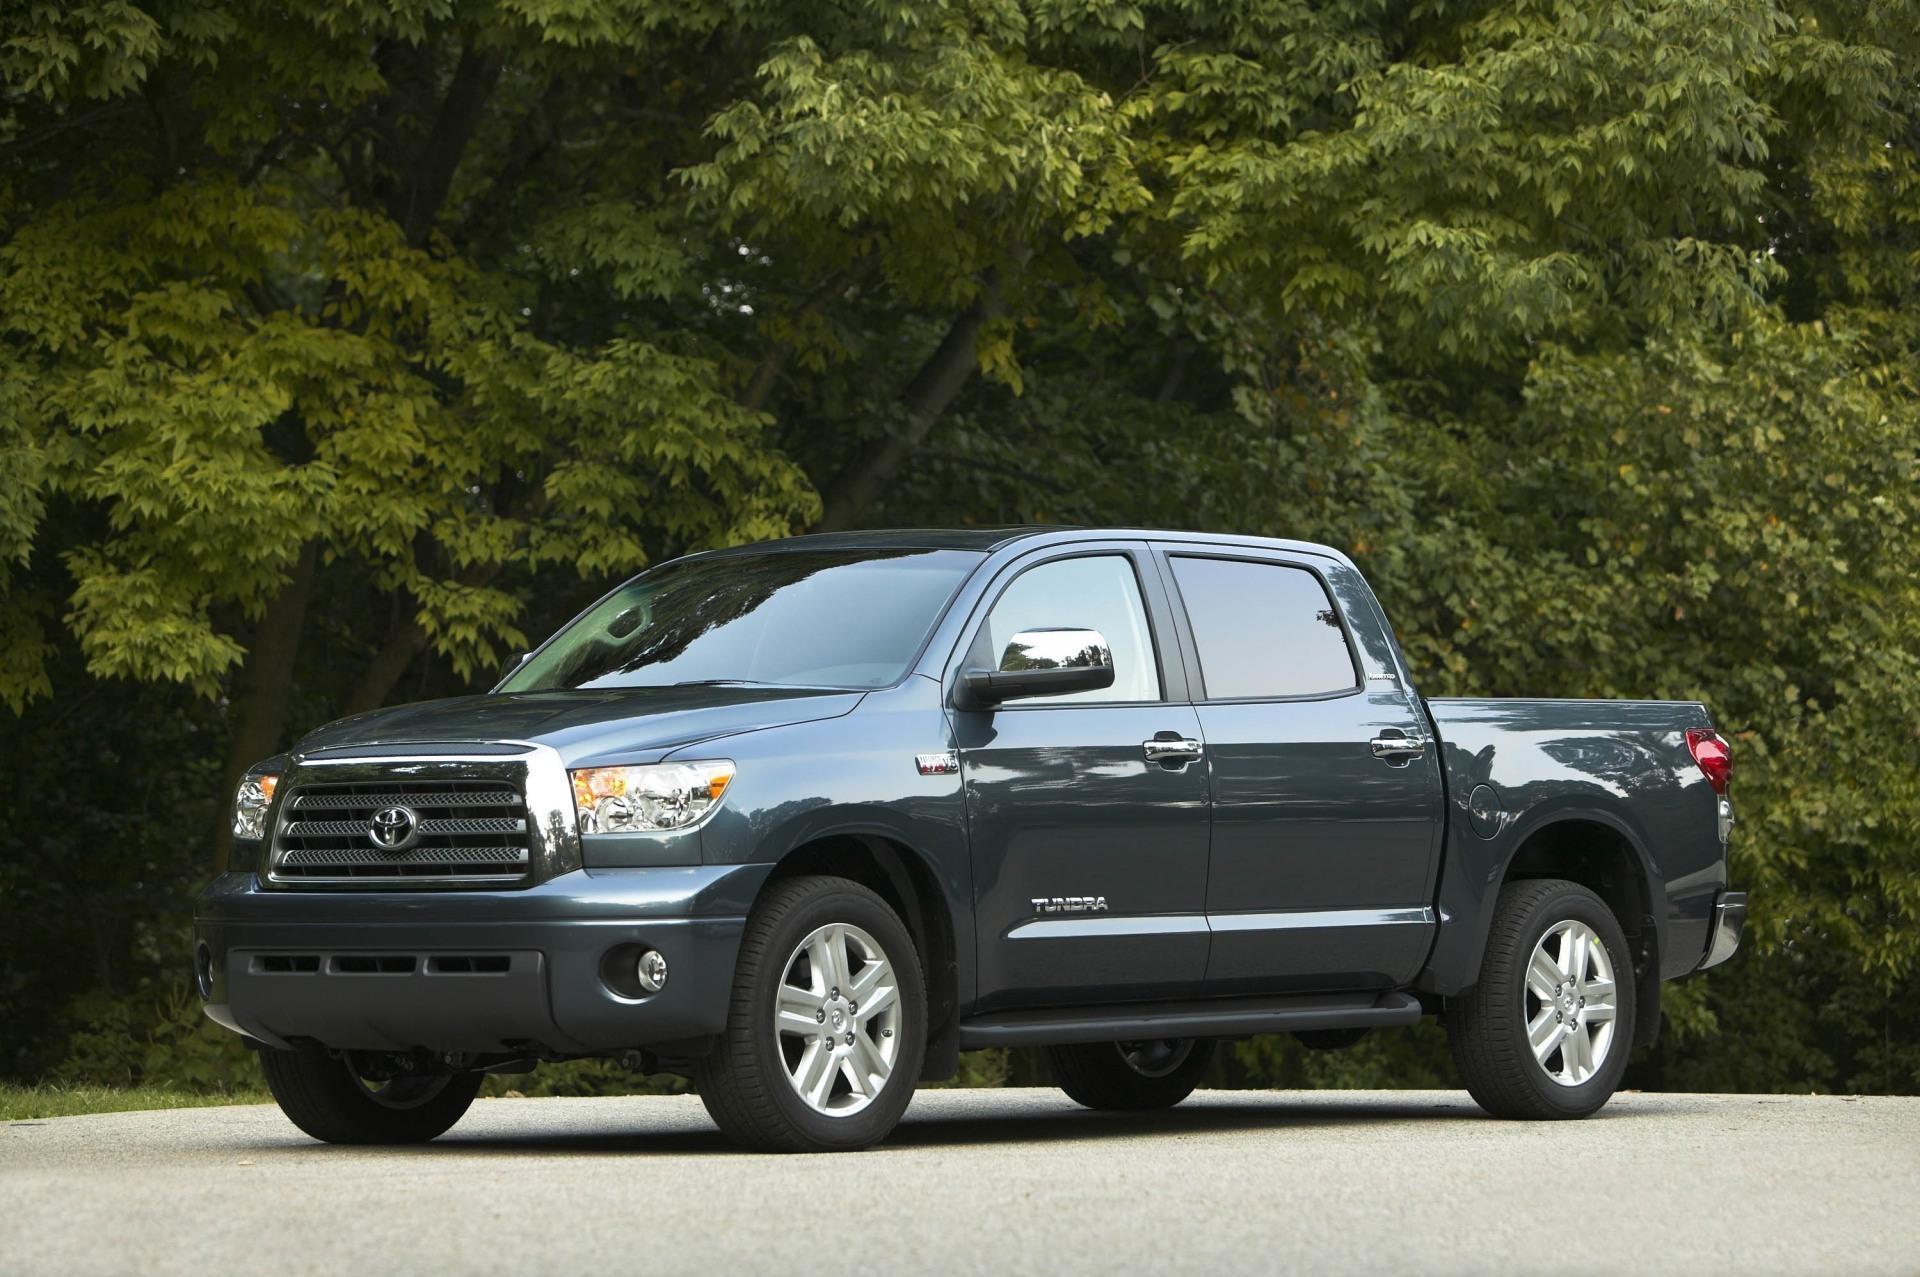 2009 toyota tundra technical specifications and data. Black Bedroom Furniture Sets. Home Design Ideas